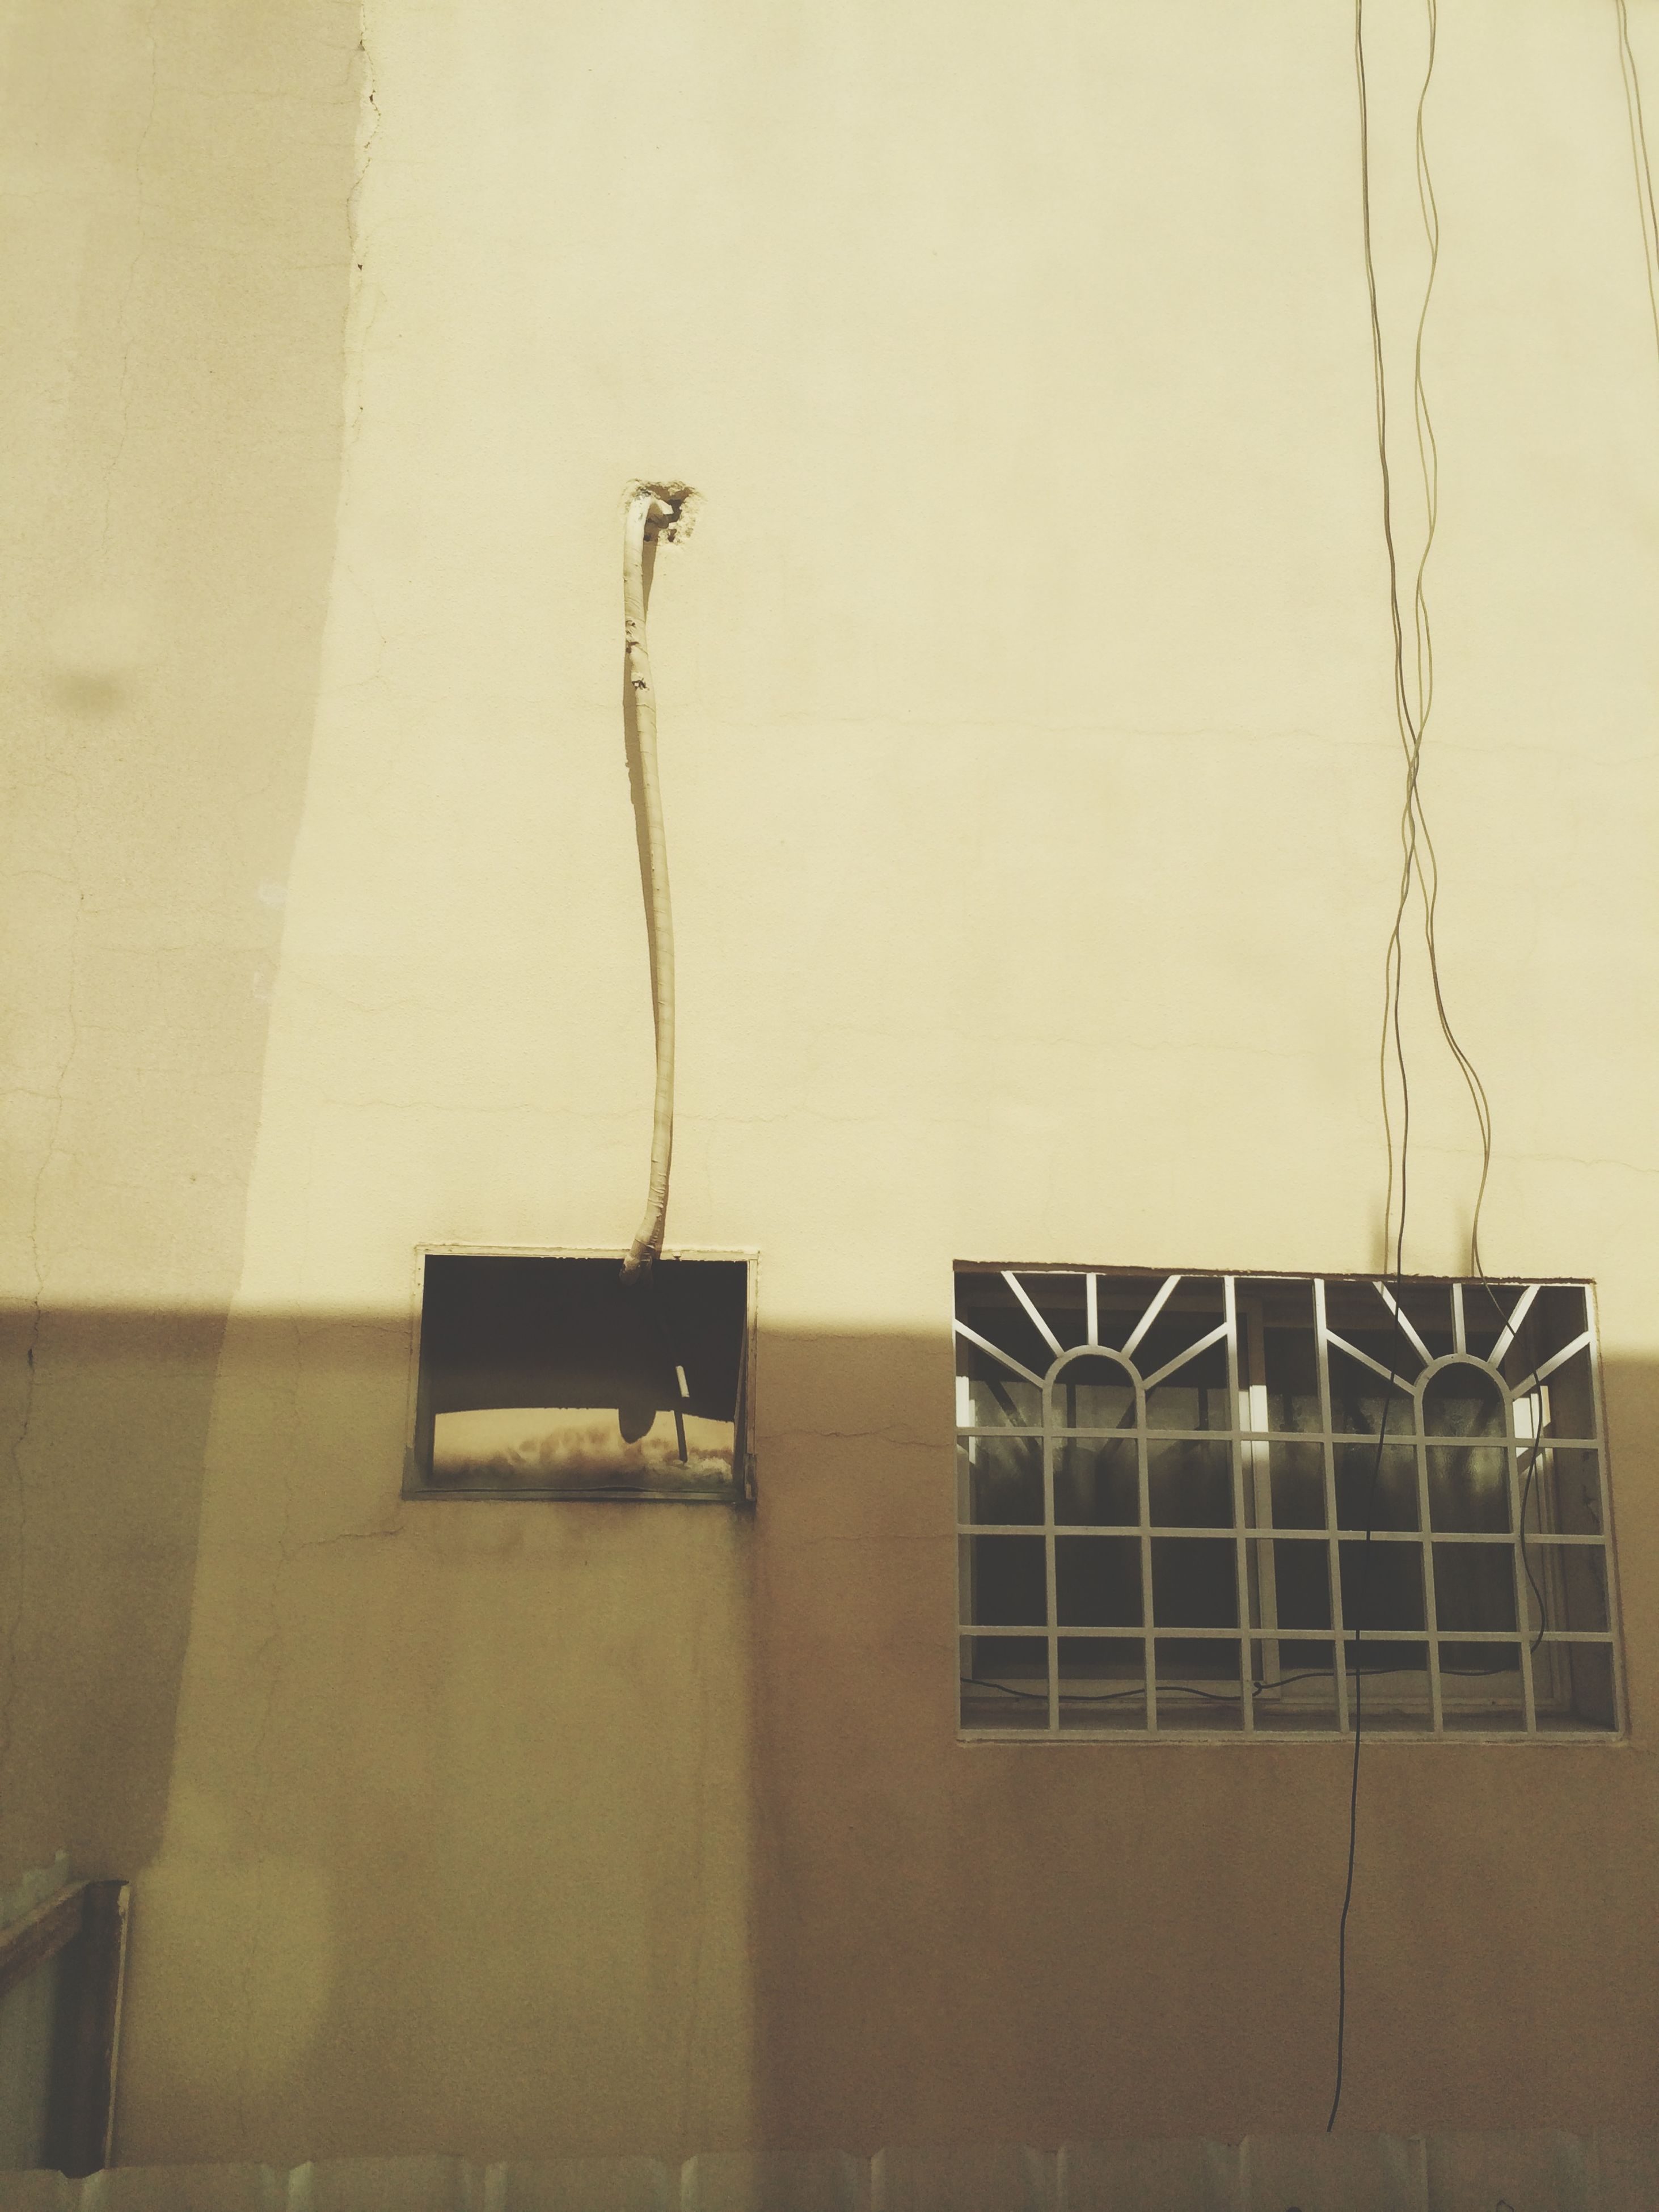 wall - building feature, built structure, architecture, electricity, building exterior, wall, low angle view, hanging, no people, house, indoors, cable, power line, shadow, day, window, lighting equipment, power supply, sunlight